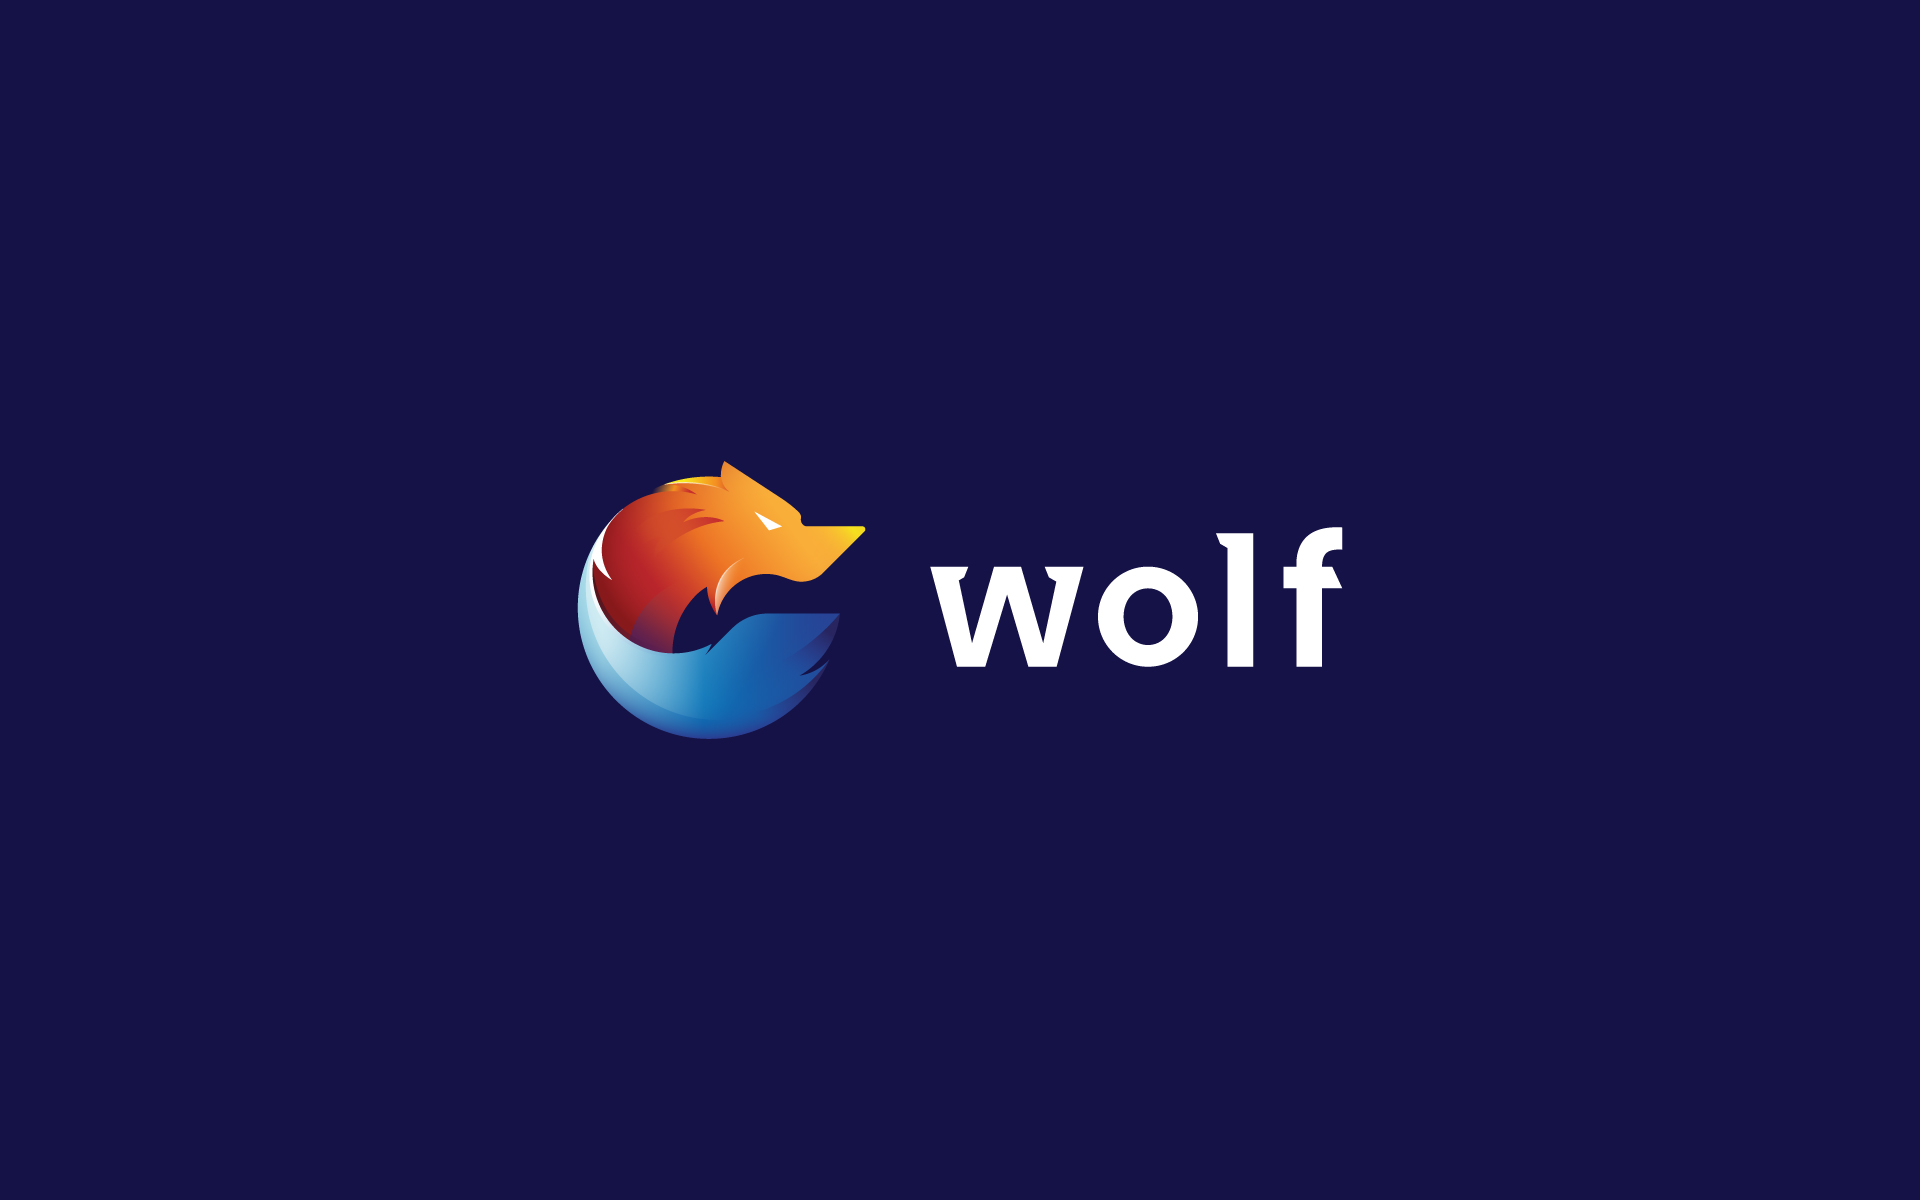 Wolf-logo-design-golden-ratio-dainogo